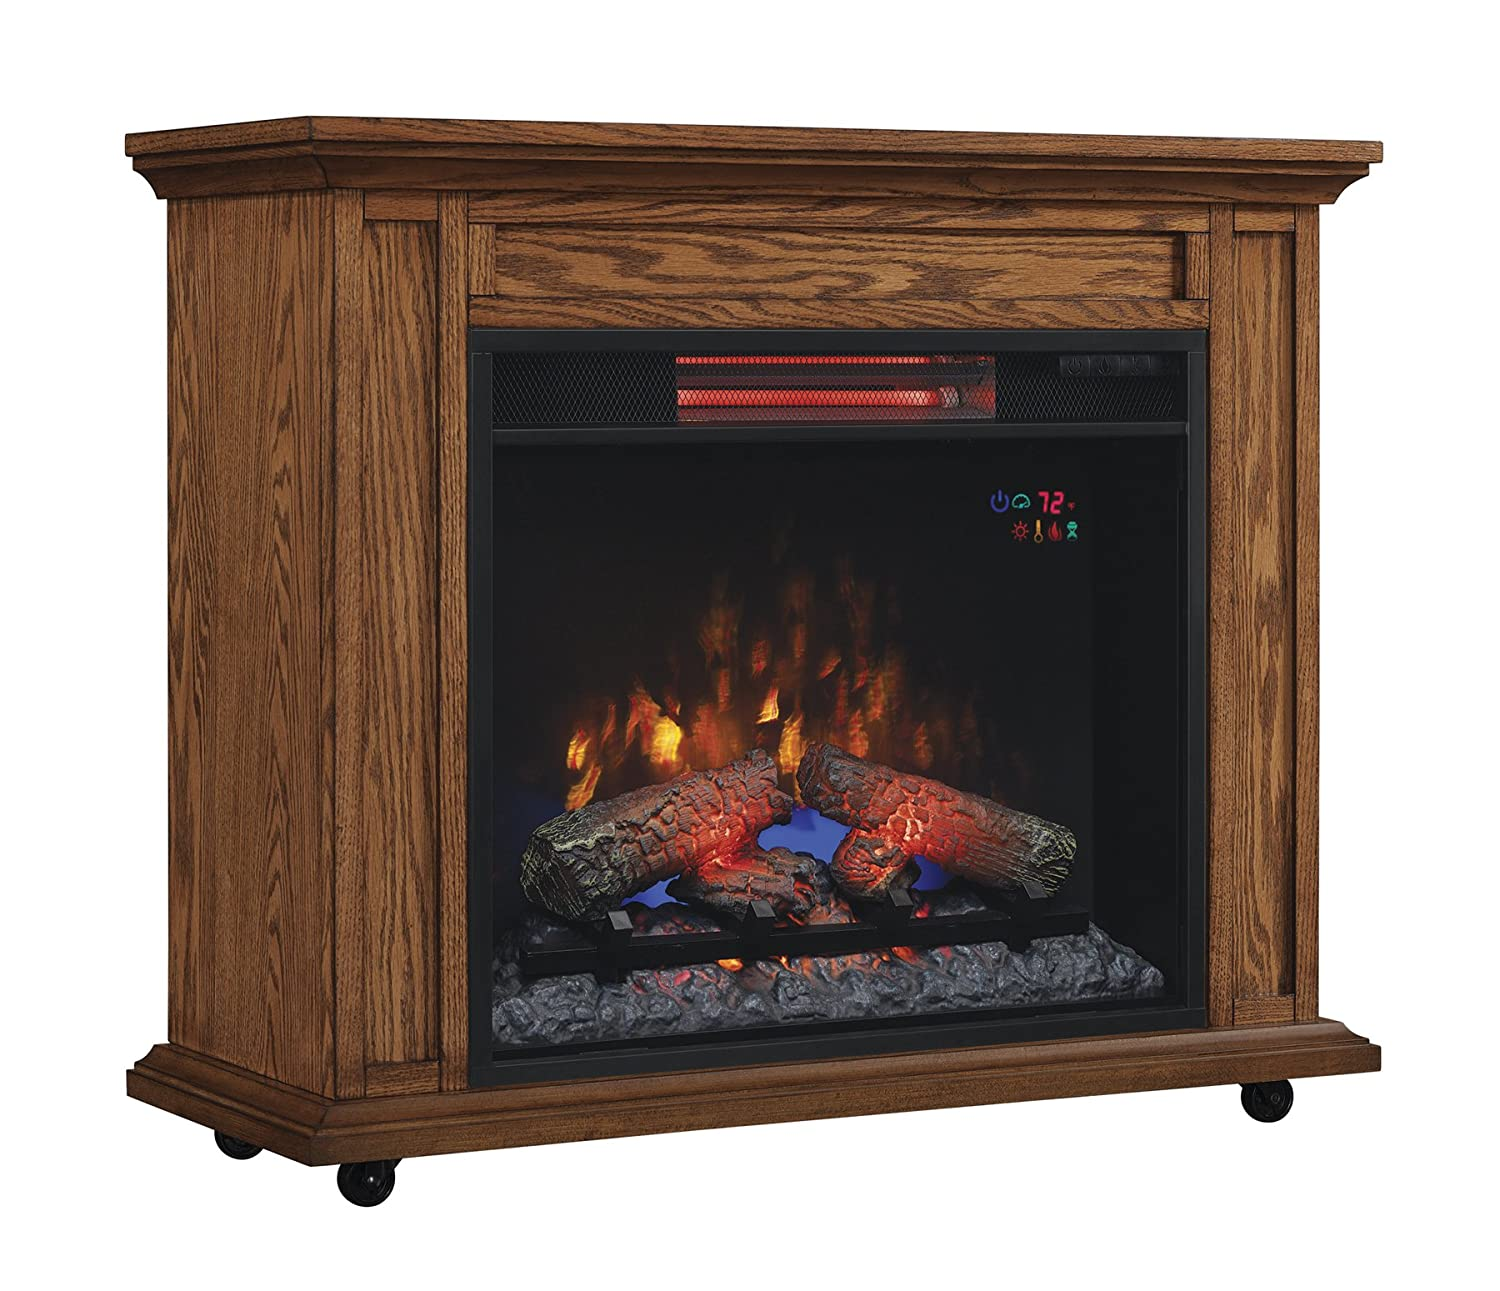 Portable Quartz Infrared Fireplace Heater in Oak